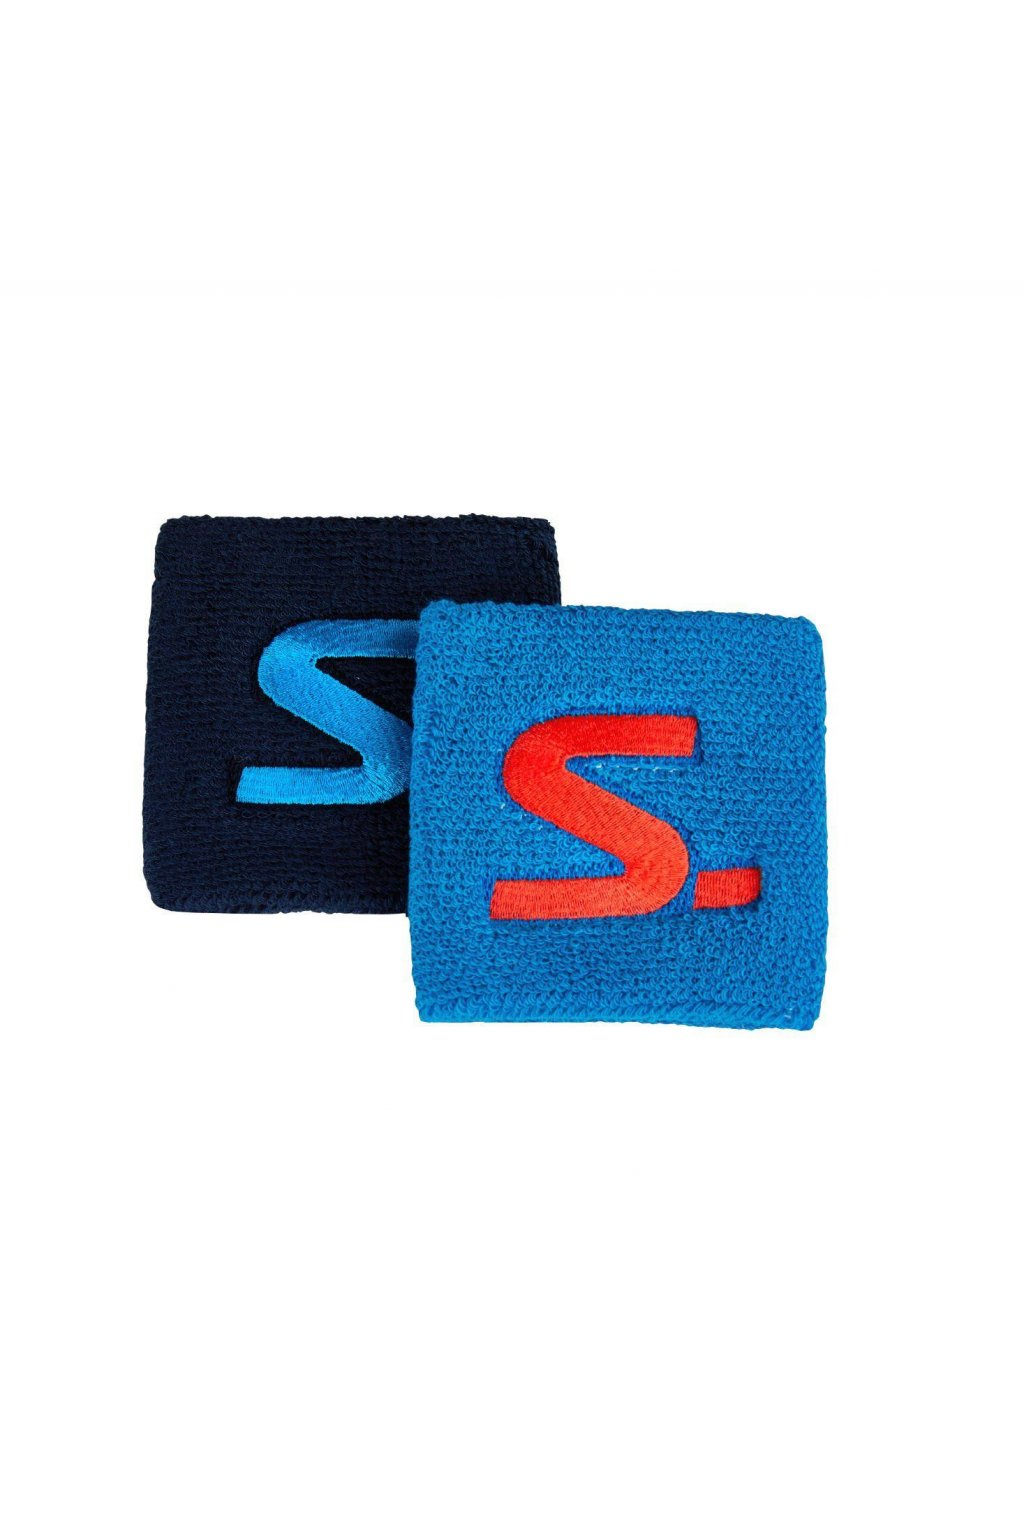 g Wristband Short 2 pack Blue Navy1188879 3304